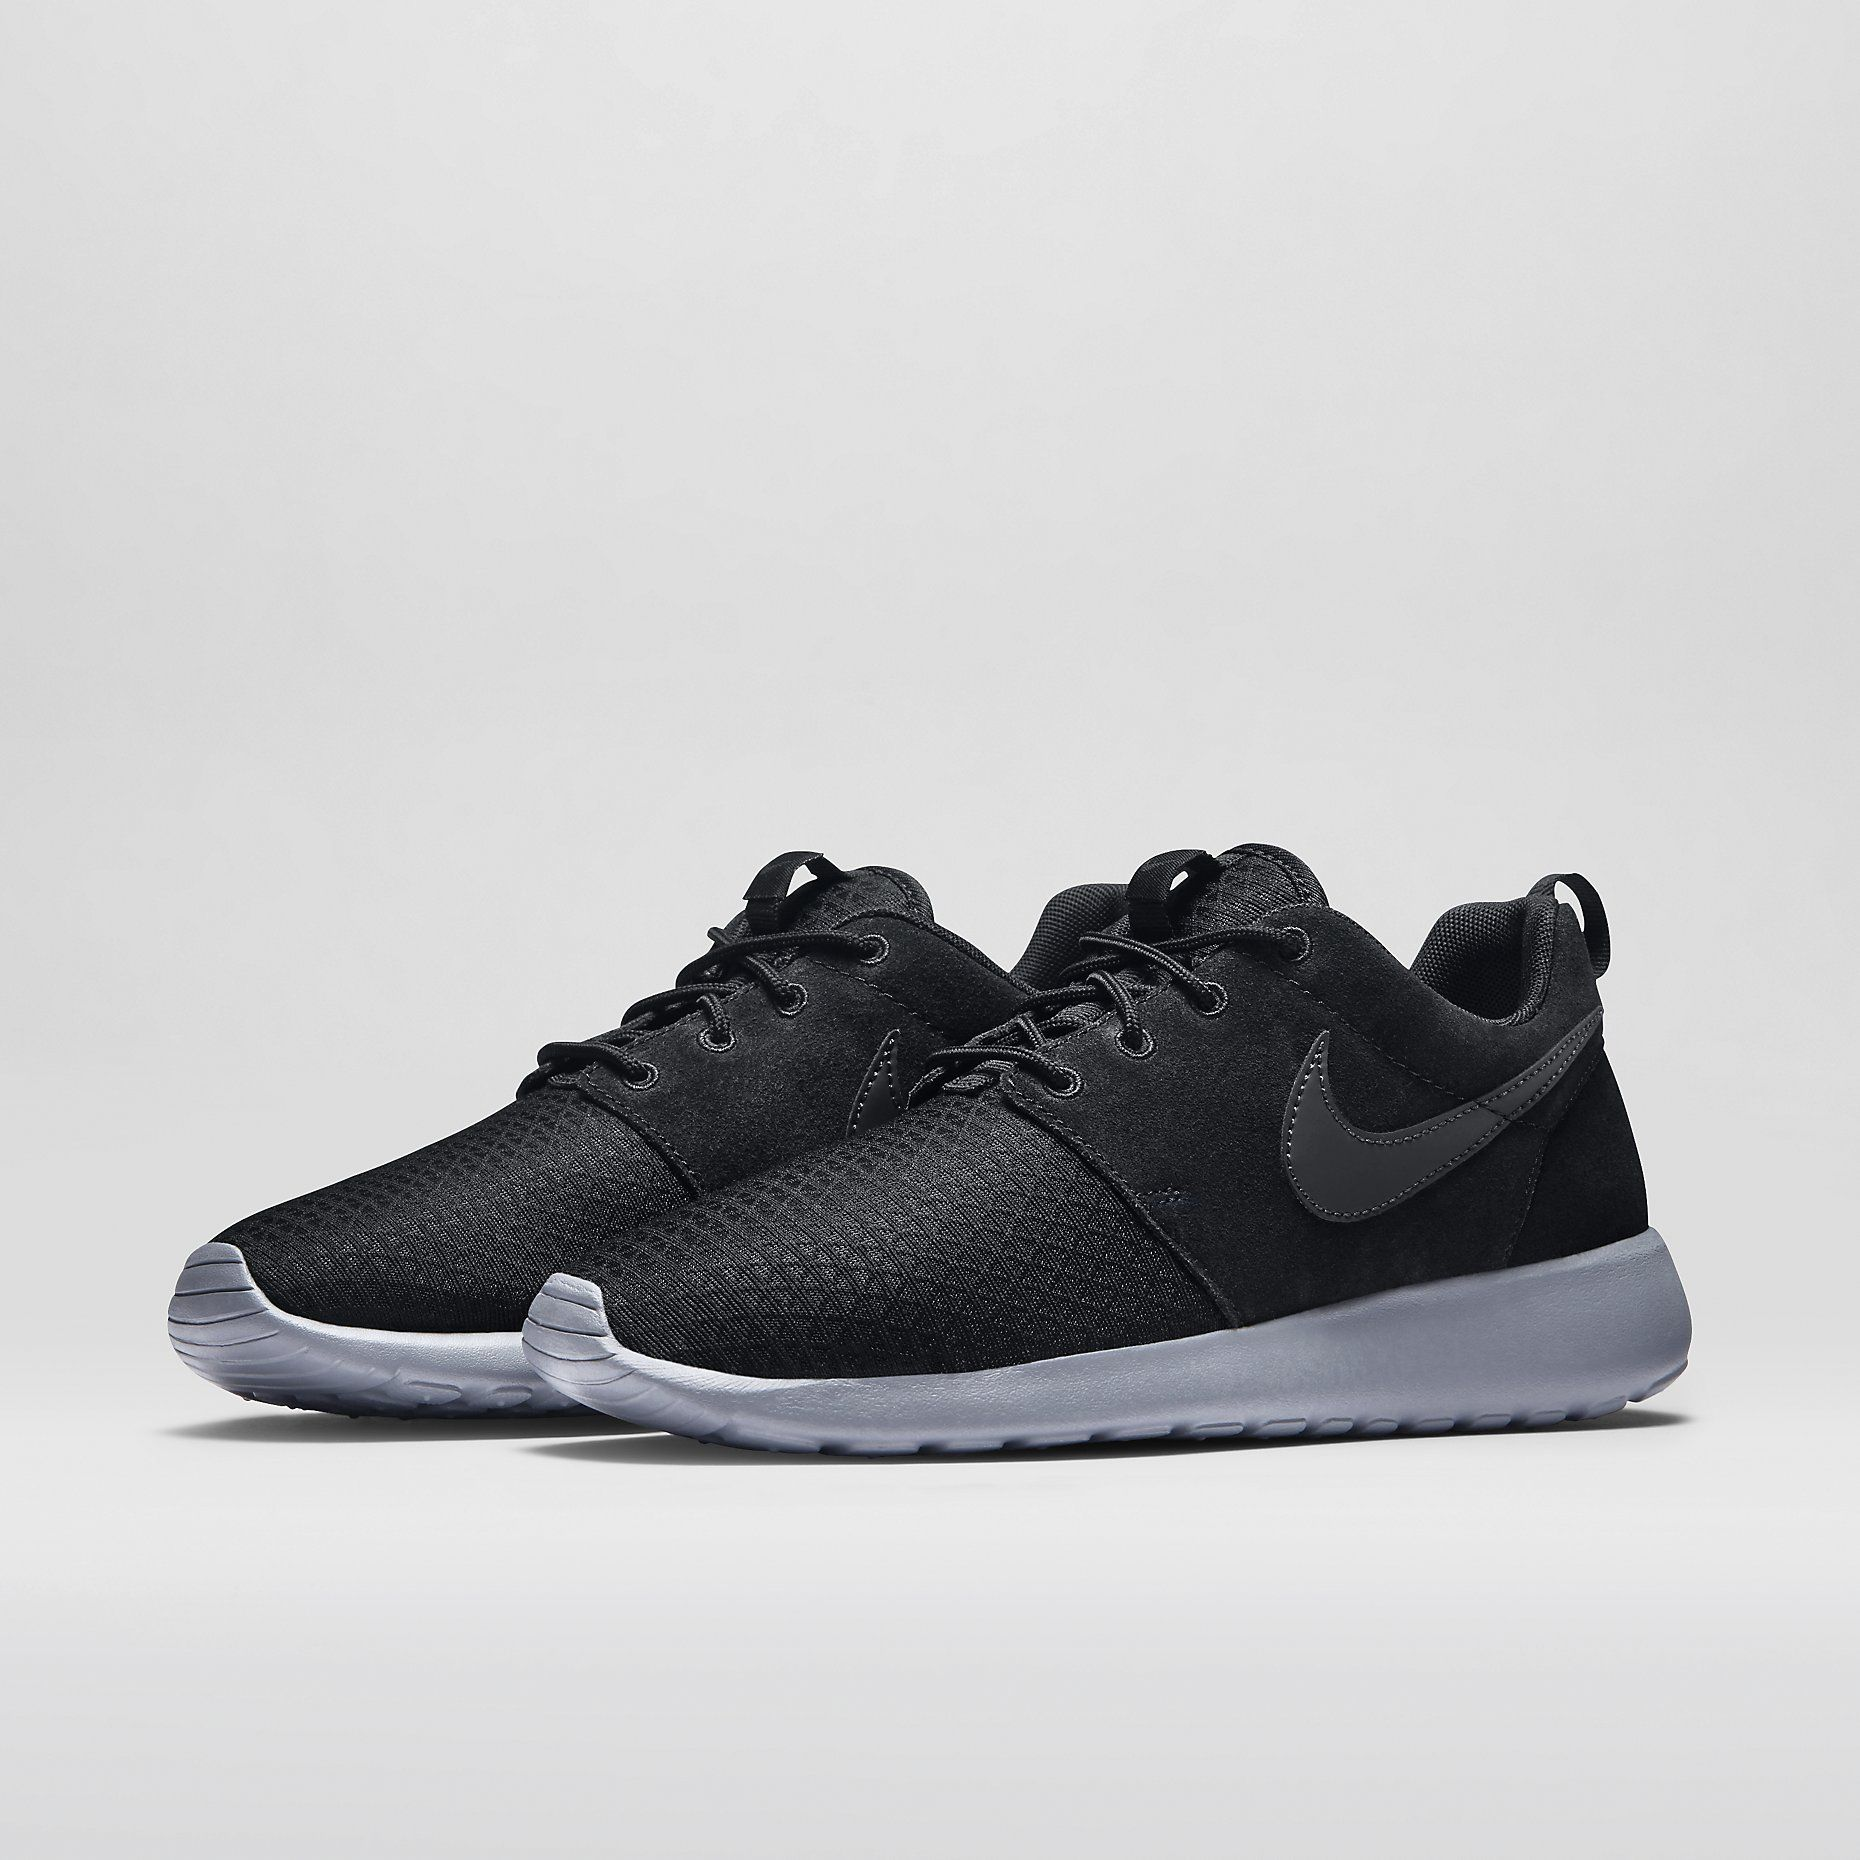 3b2e88fb47f0e Nike Roshe Run Winter Women s Shoe. Nike Store